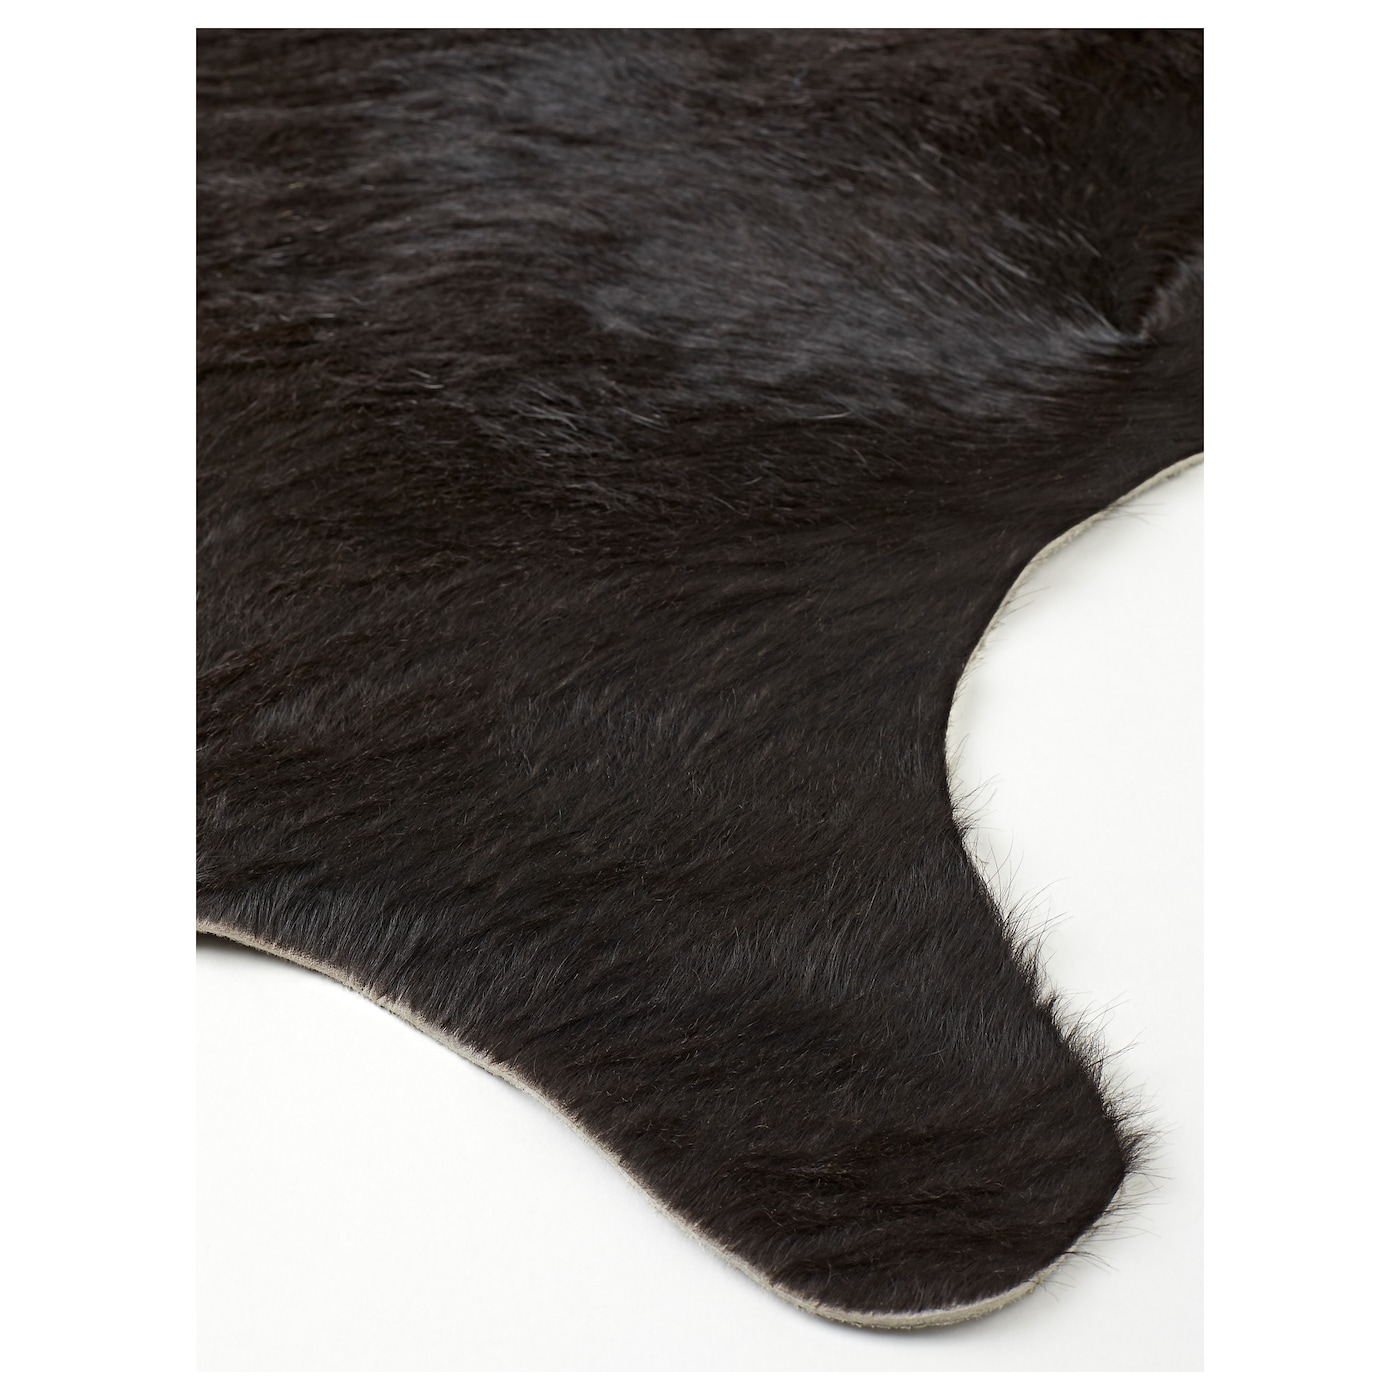 IKEA KOLDBY cow hide The cowhide is naturally durable and will last for many years.